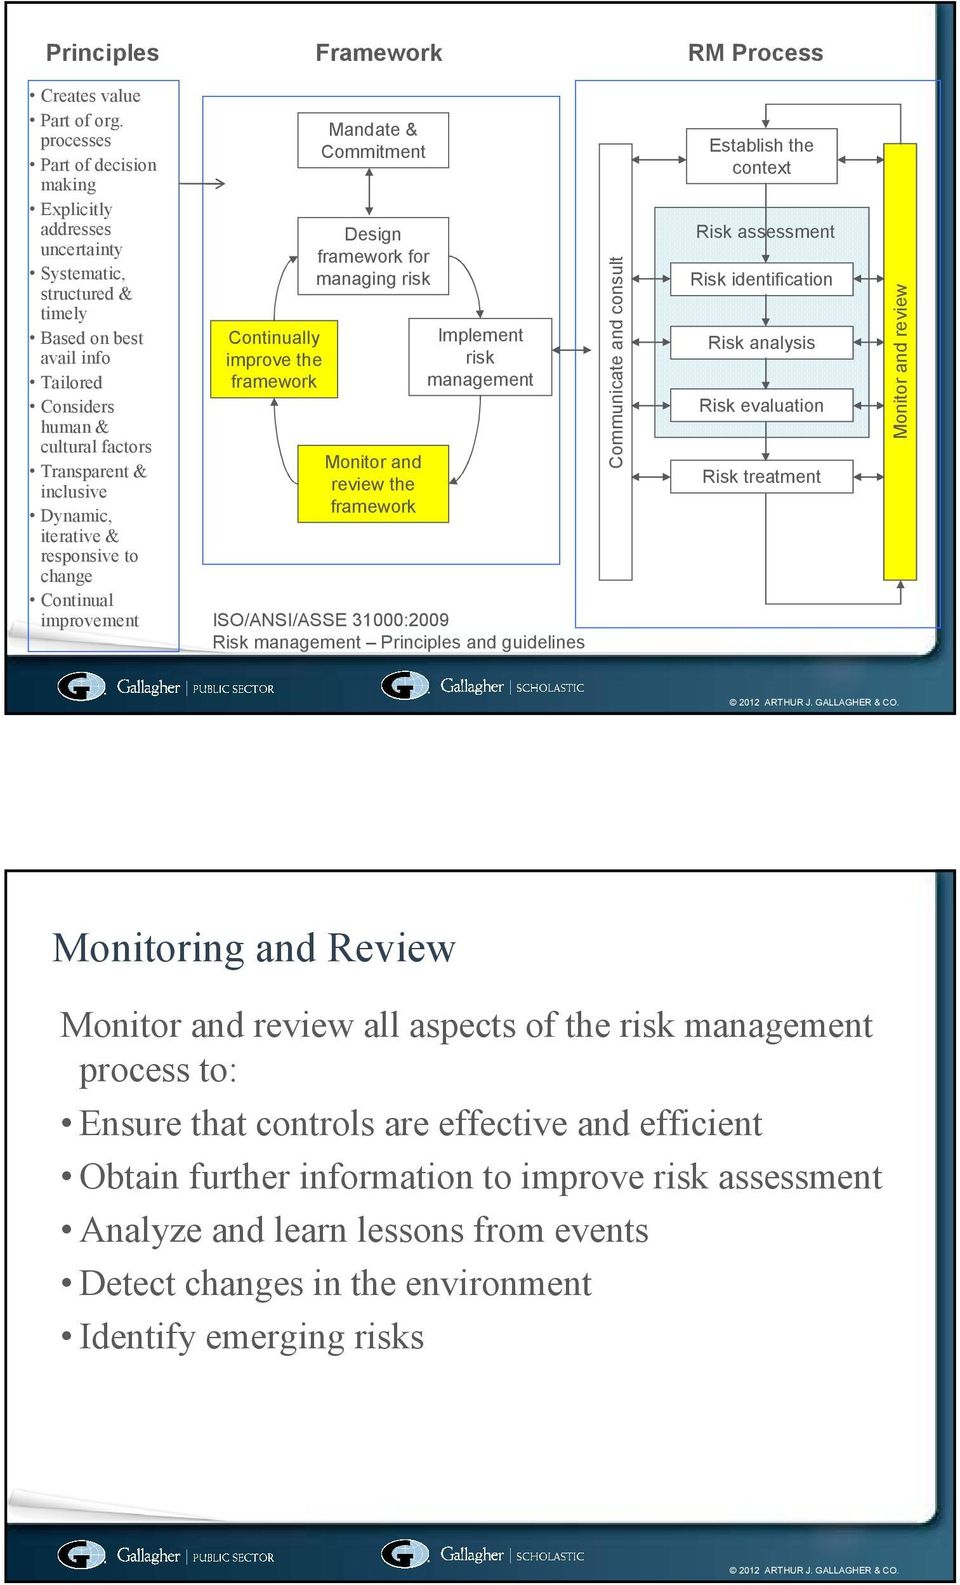 Dynamic, iterative & responsive to change Continual improvement Continually improve the framework Mandate & Commitment Design framework for managing risk Monitor and review the framework Implement